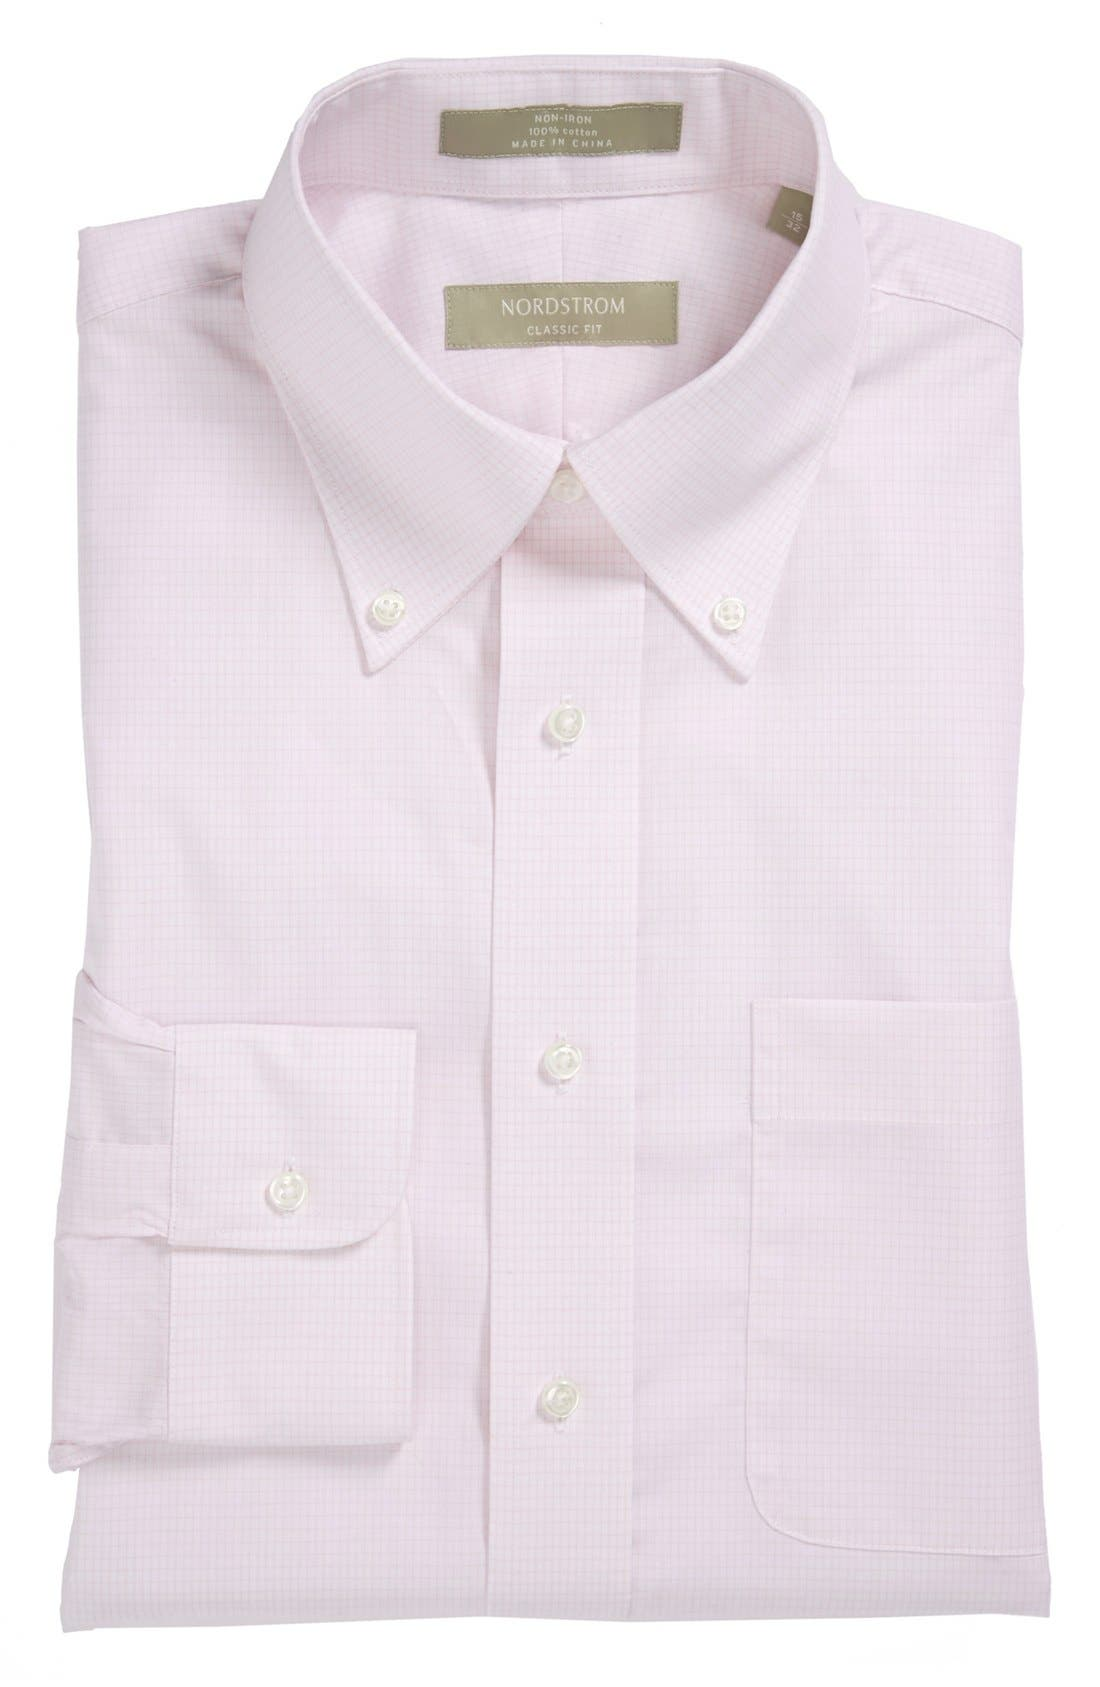 Alternate Image 1 Selected - Nordstrom Classic Fit Non-Iron Dress Shirt (Big & Tall)